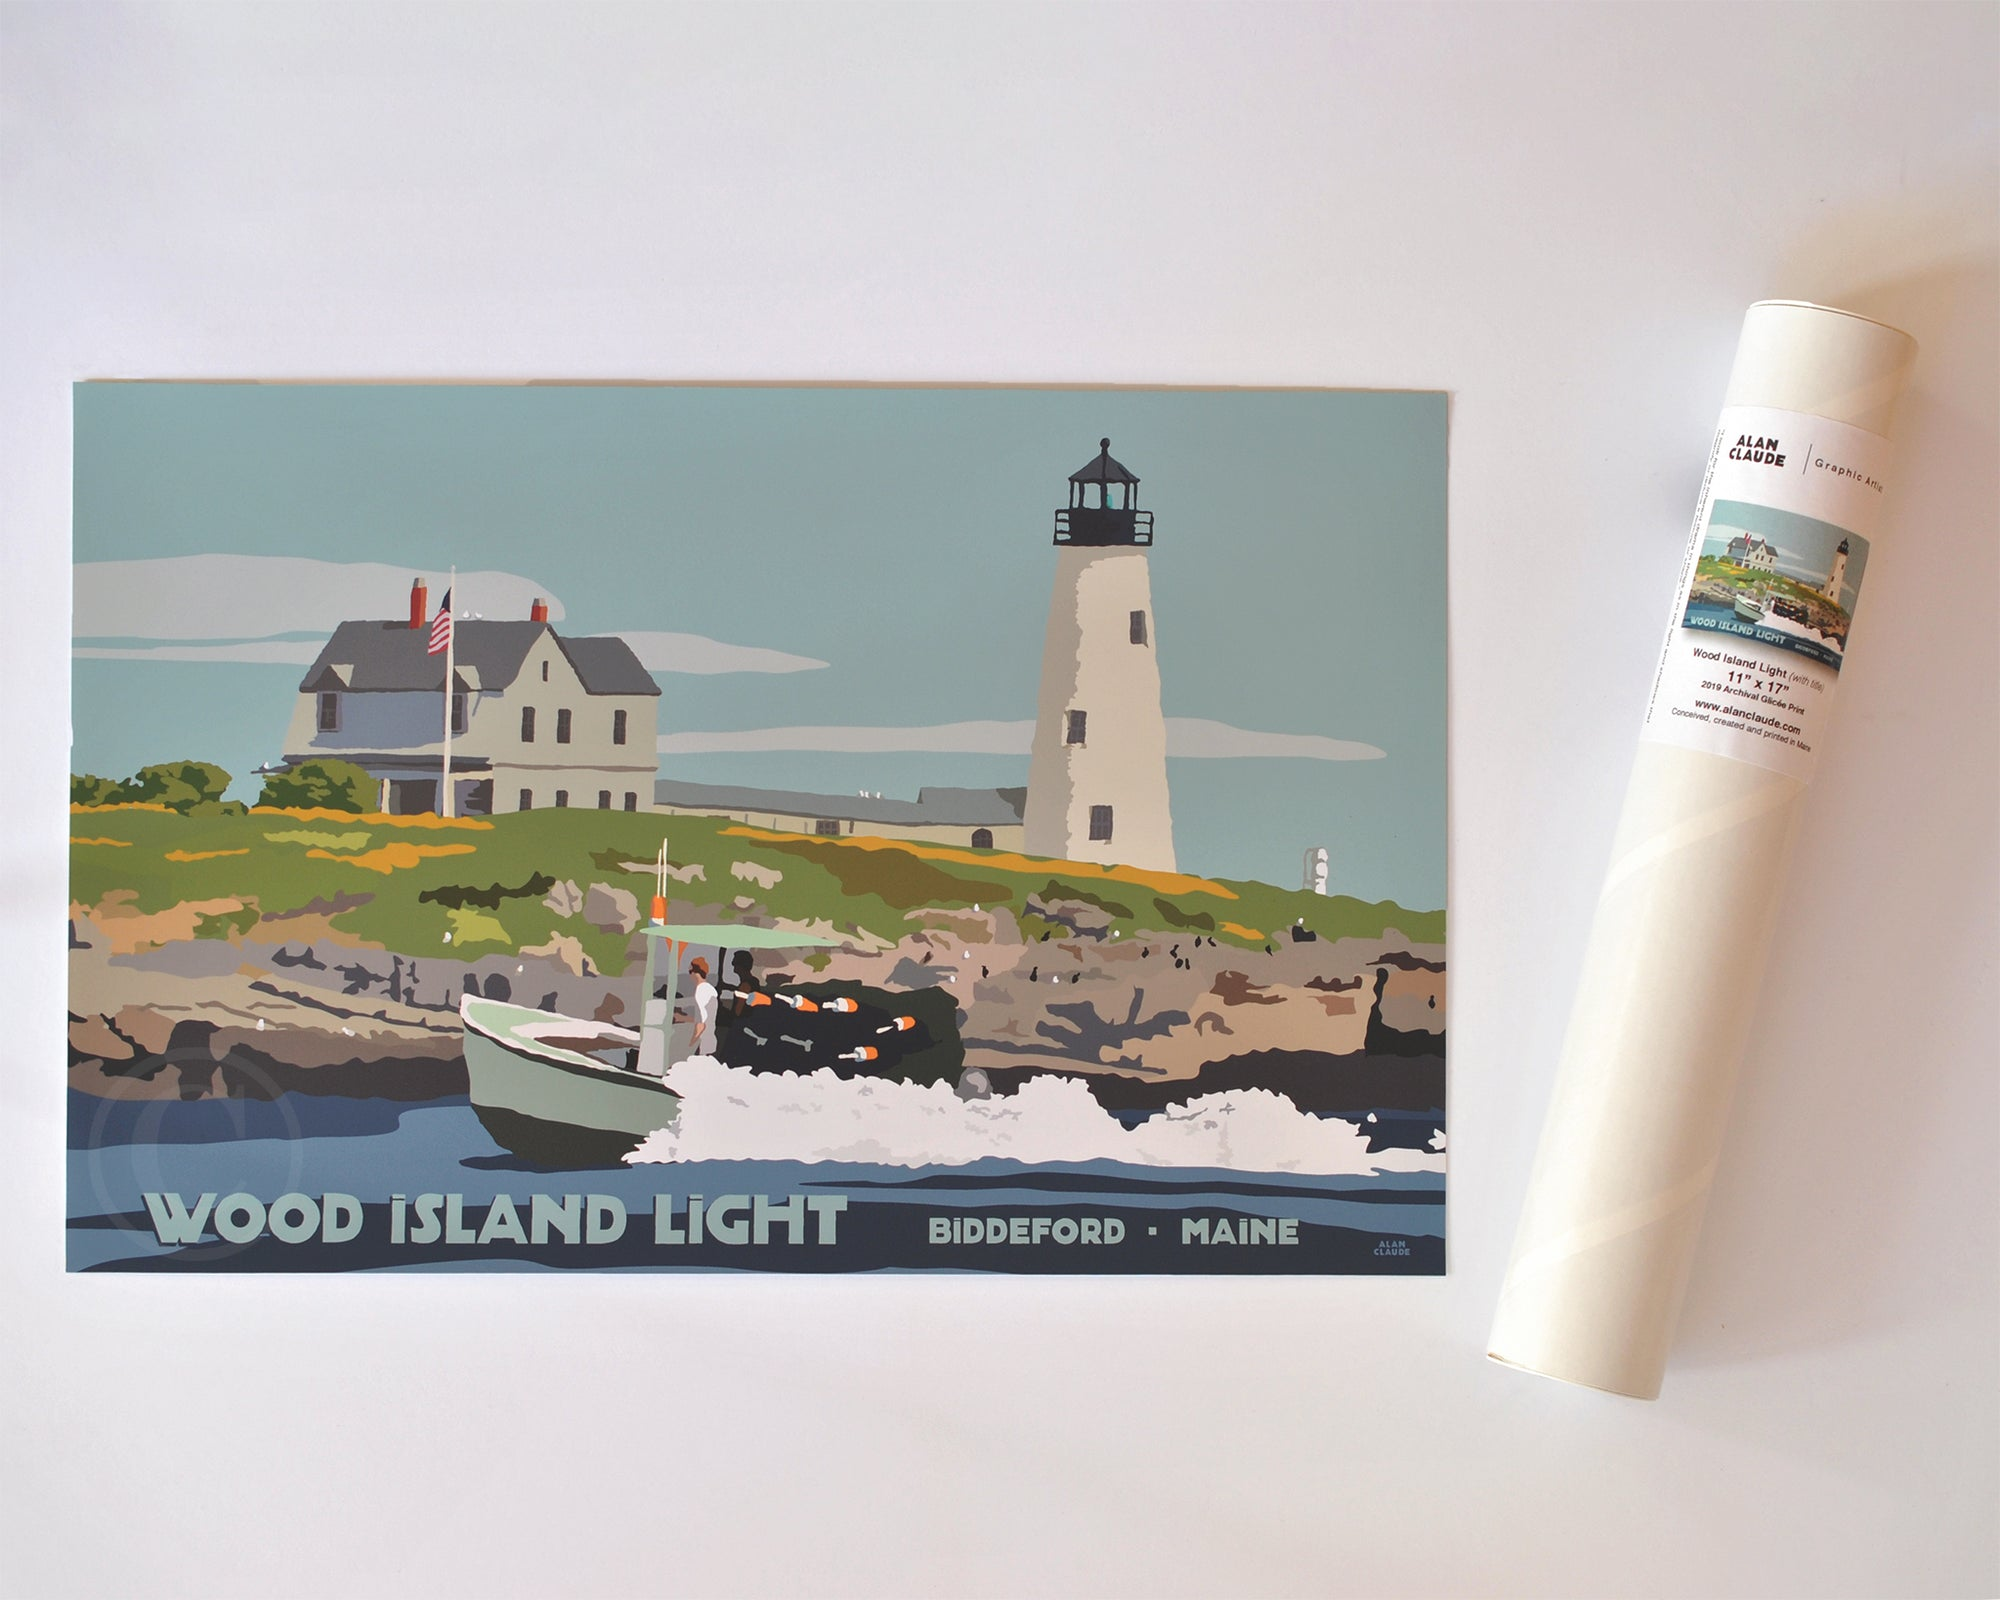 "Wood Island Light Travel Poster Art Print 11"" x 17"" Travel Poster - Maine"